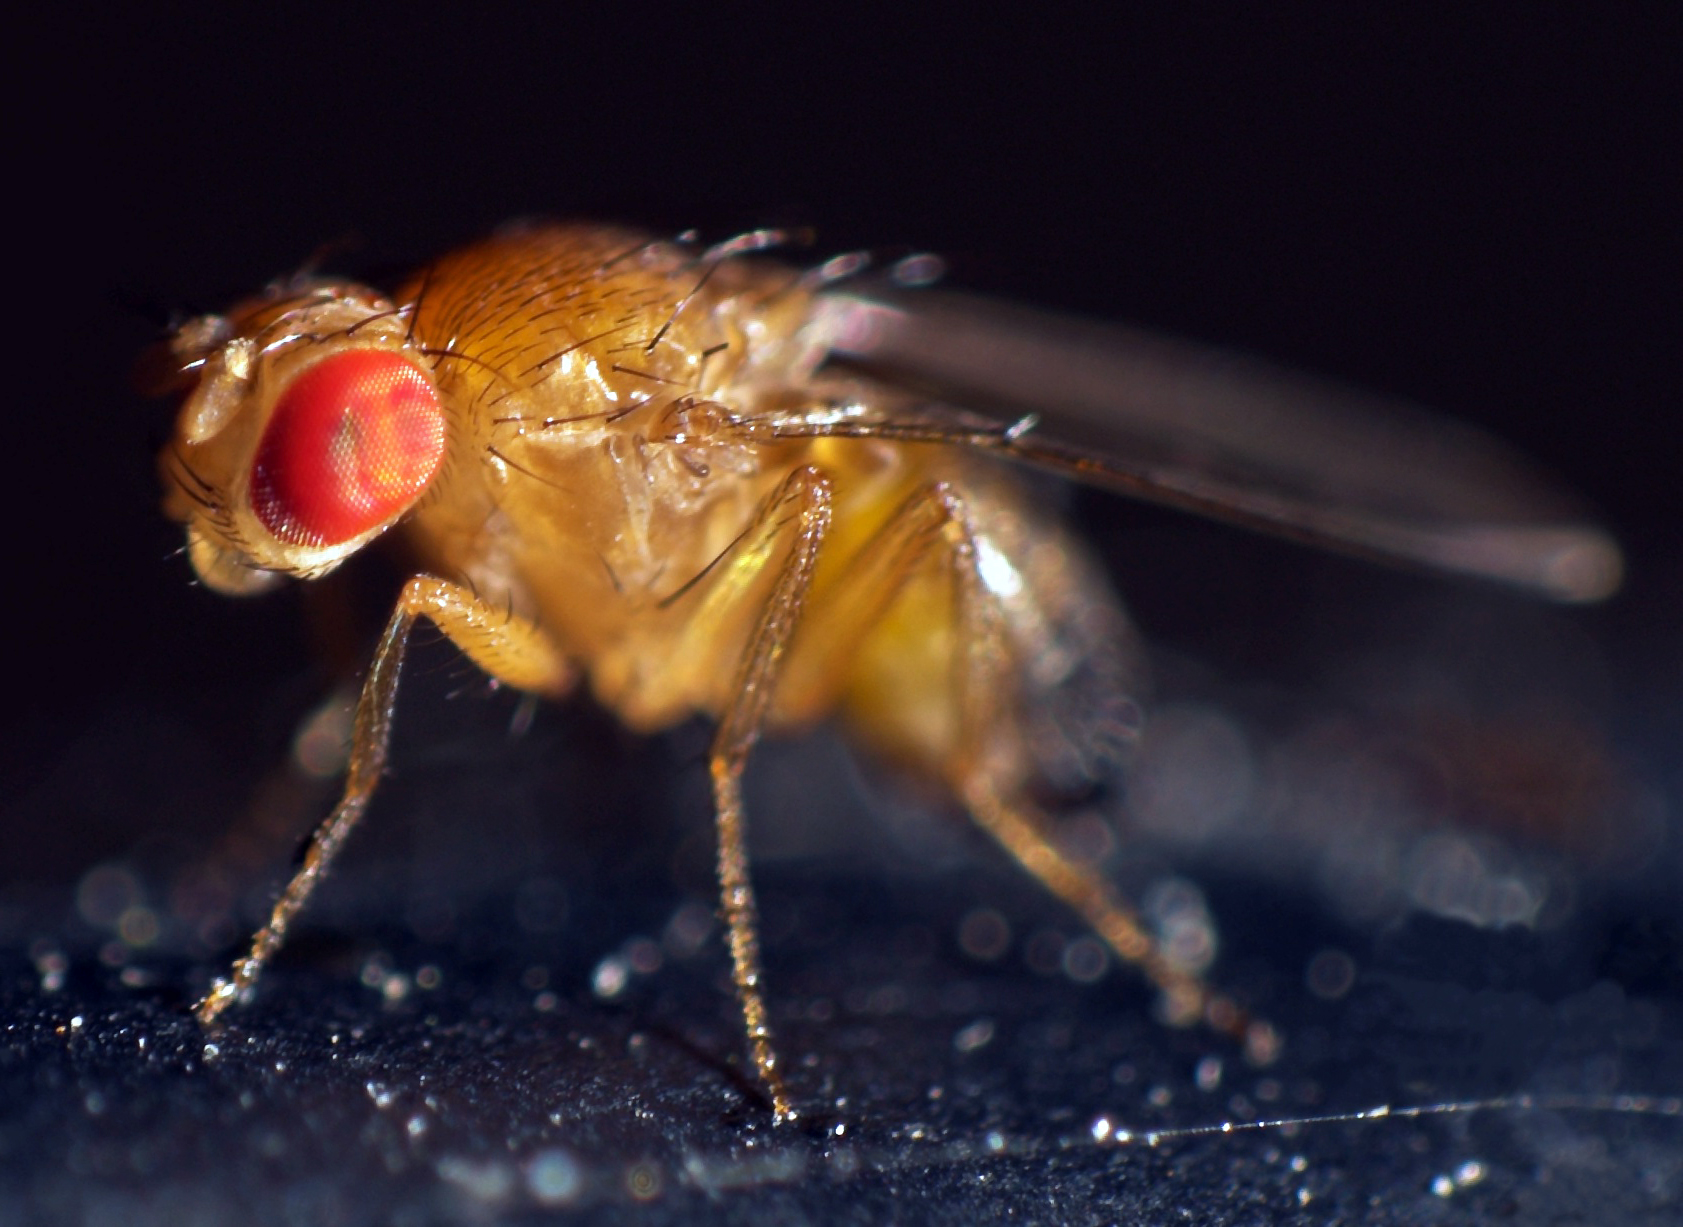 Are all fruit fly sperm comparison can help